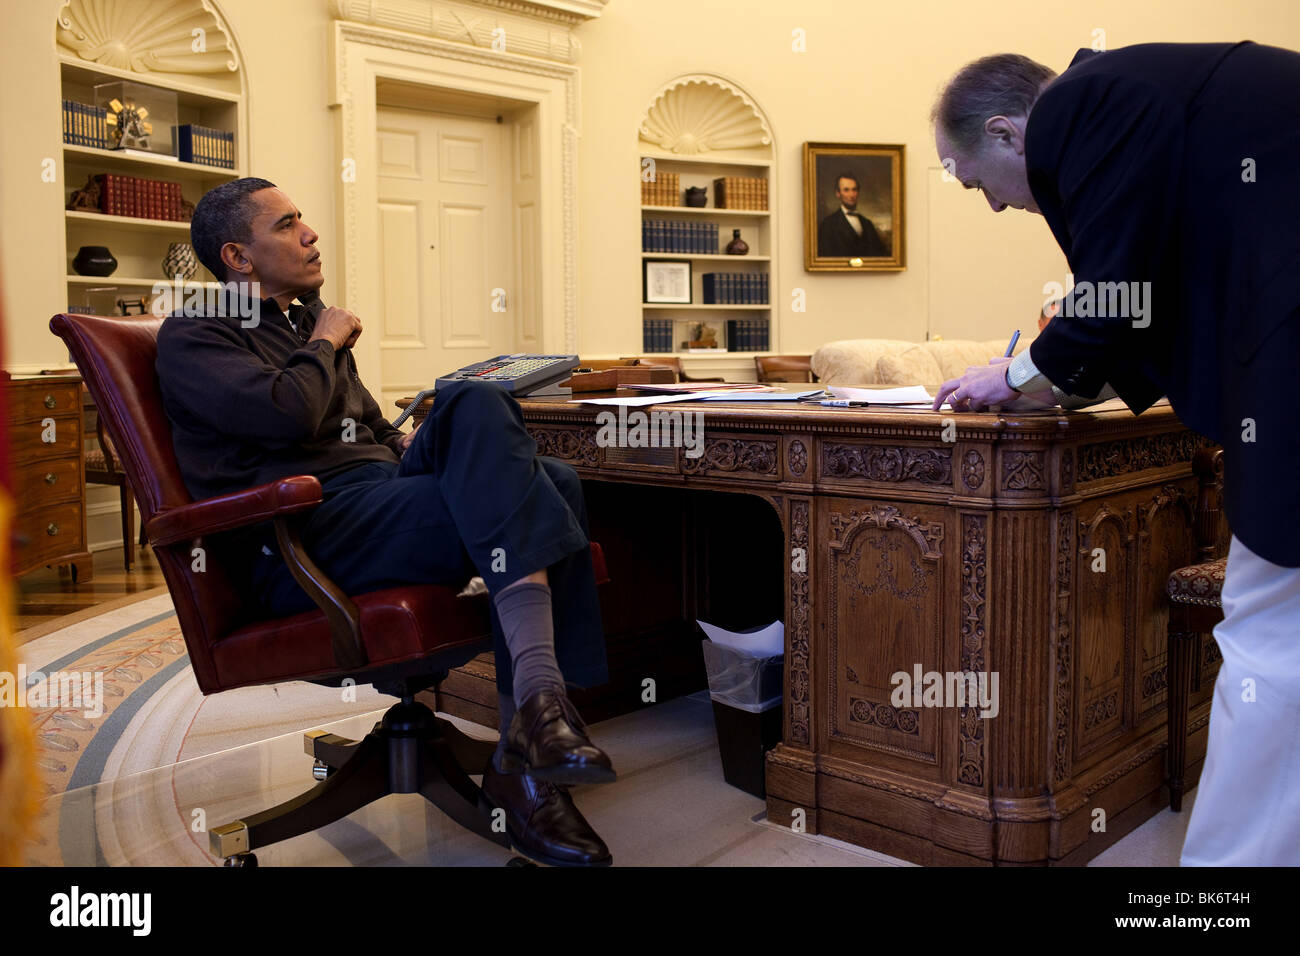 oval office july 2015. President Barack Obama Talks On The Telephone In Oval Office With Dmitri Medvedev, Of Russia, March 13, 2010. July 2015